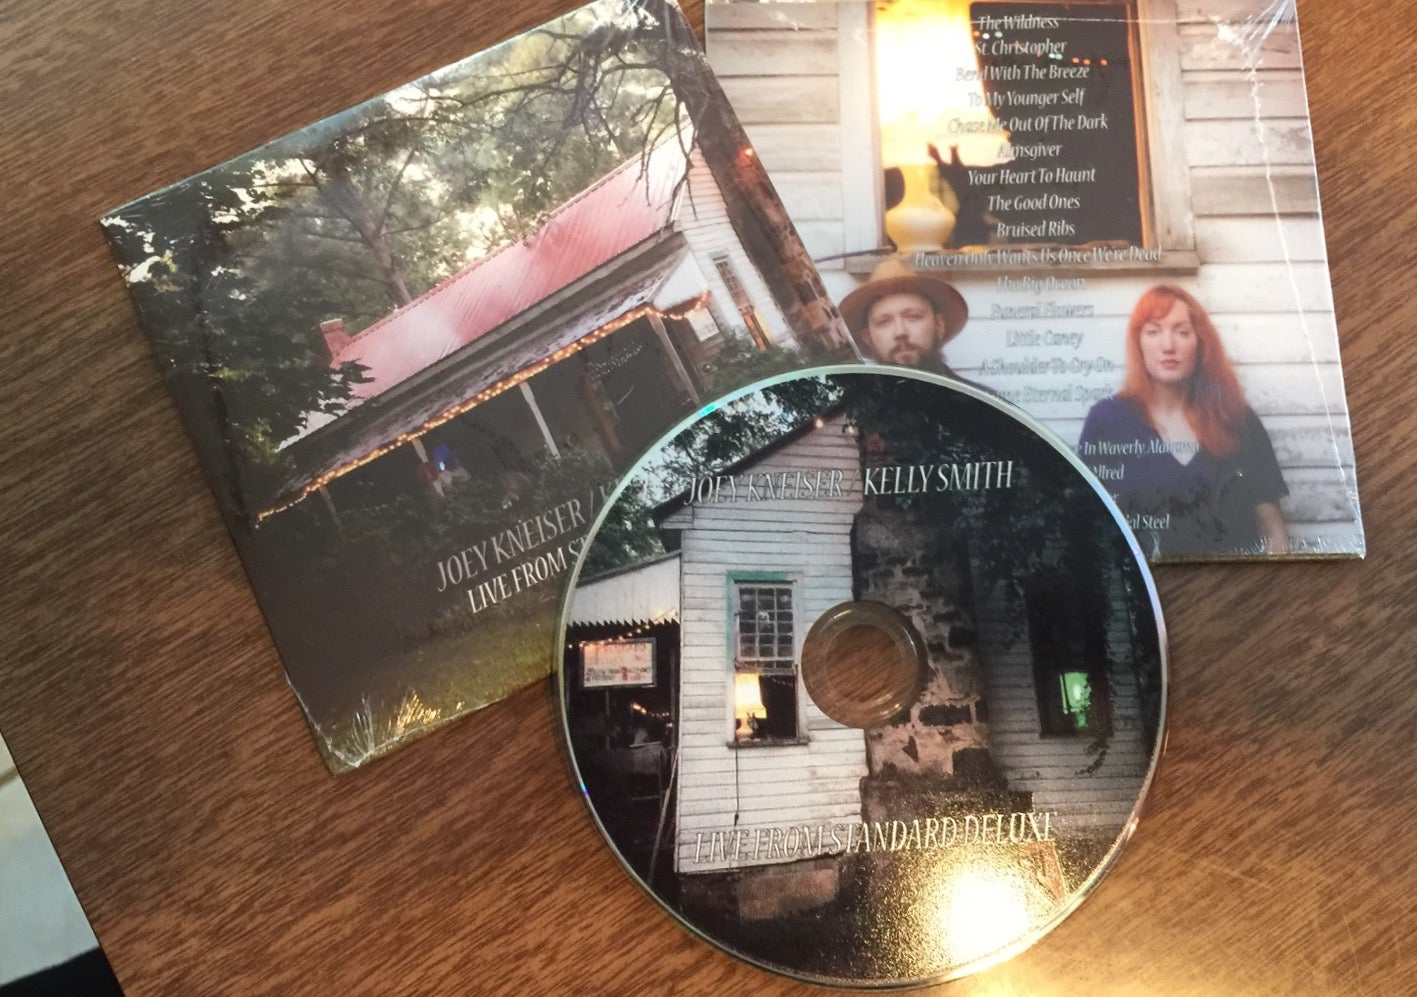 Image of Joey Kneiser / Kelly Smith (Glossary) Live From Standard Deluxe {Compact Disc}